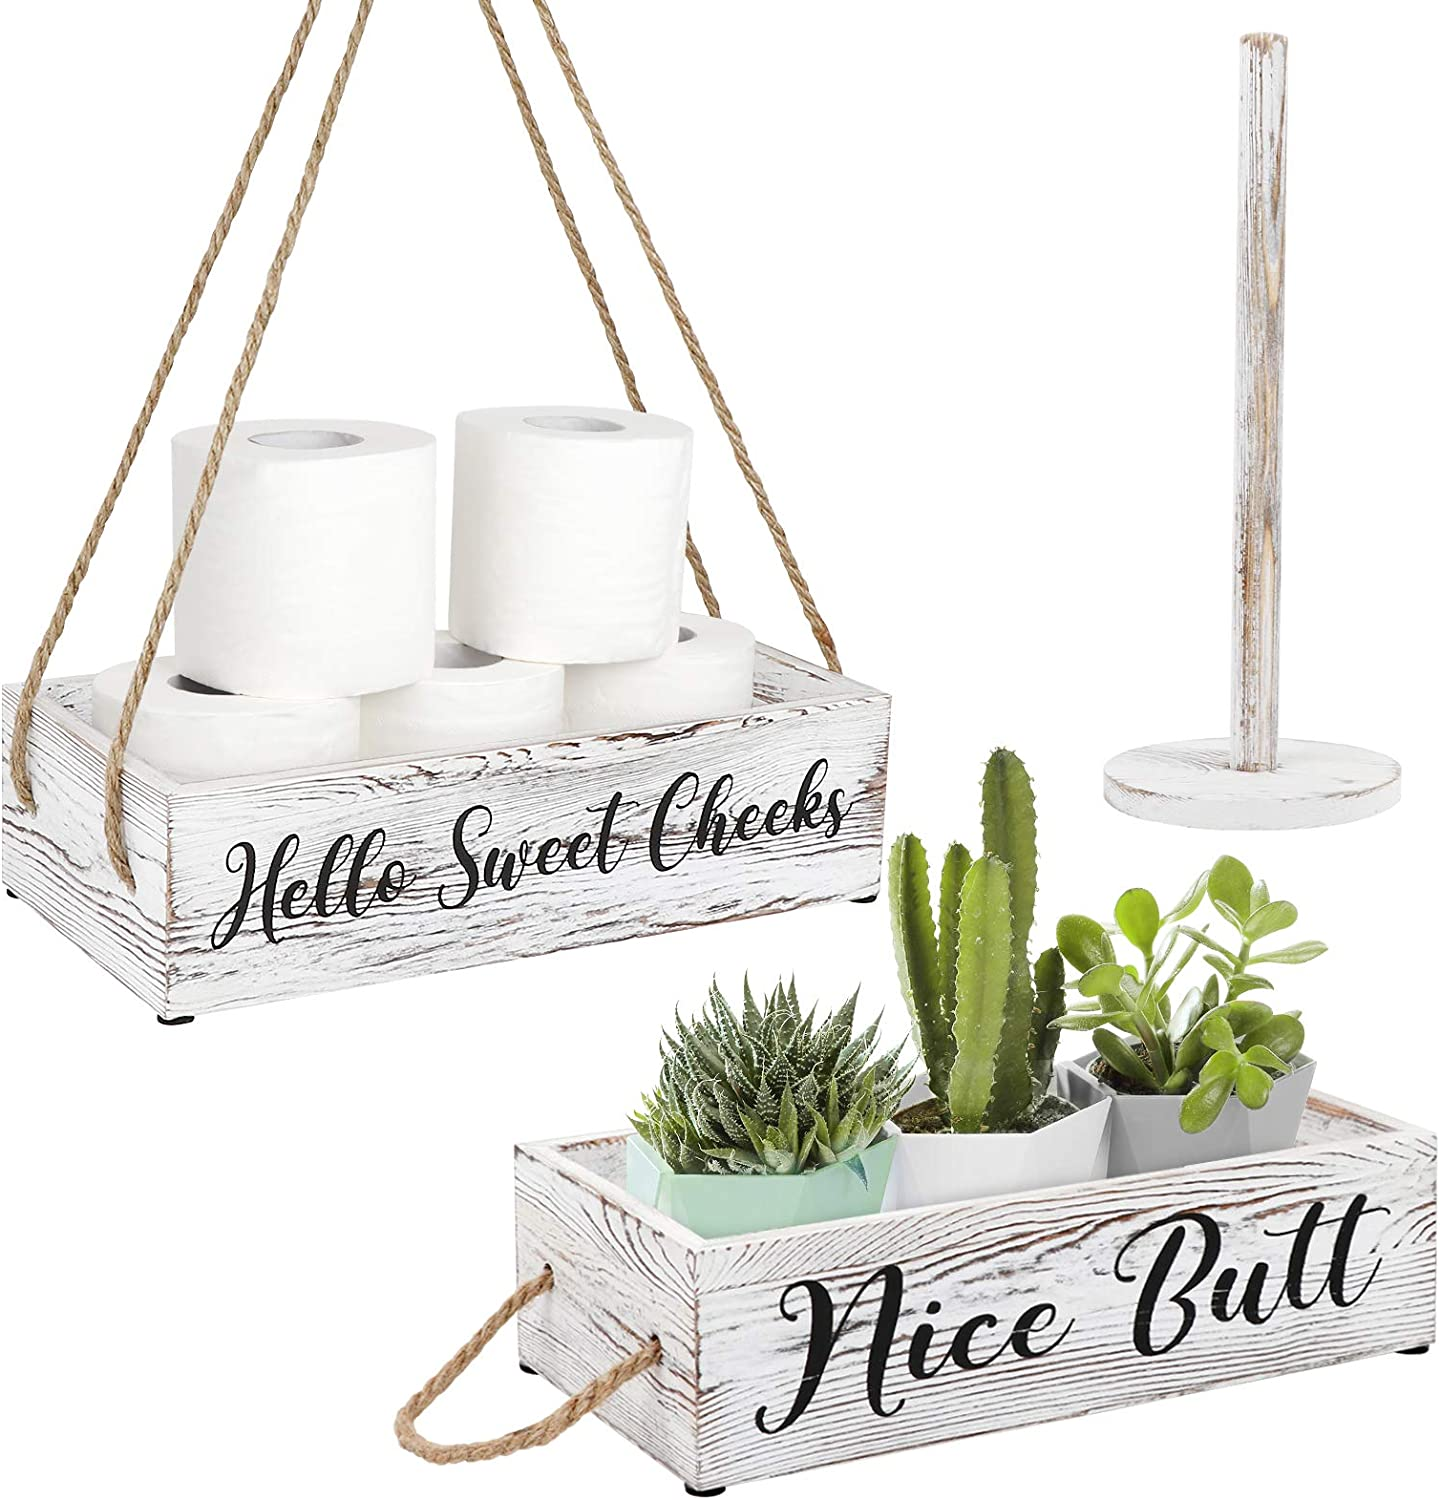 OurWarm Funny Bathroom Decor Box, 2 Sides with Toilet Paper Holder Wall Decor Perfect for House Decor, Modern Farmhouse Decor, Toilet Paper Storage, Rustic Bathroom Decor, Funny Bathroom Signs